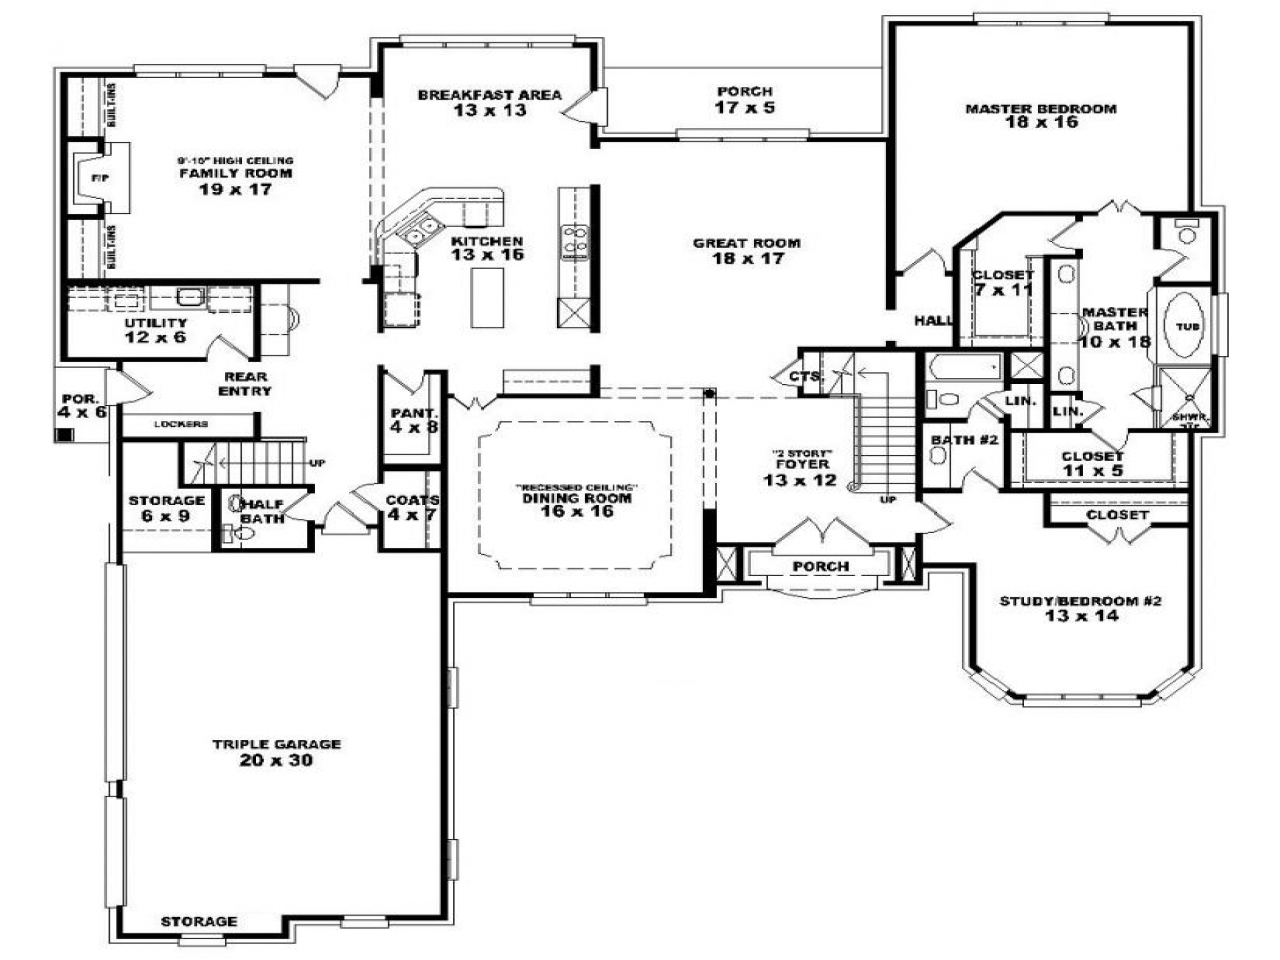 4 Bedroom One Story House Plans Our Two Bedroom Story Shusei 1 Bedroom House Floor Plans